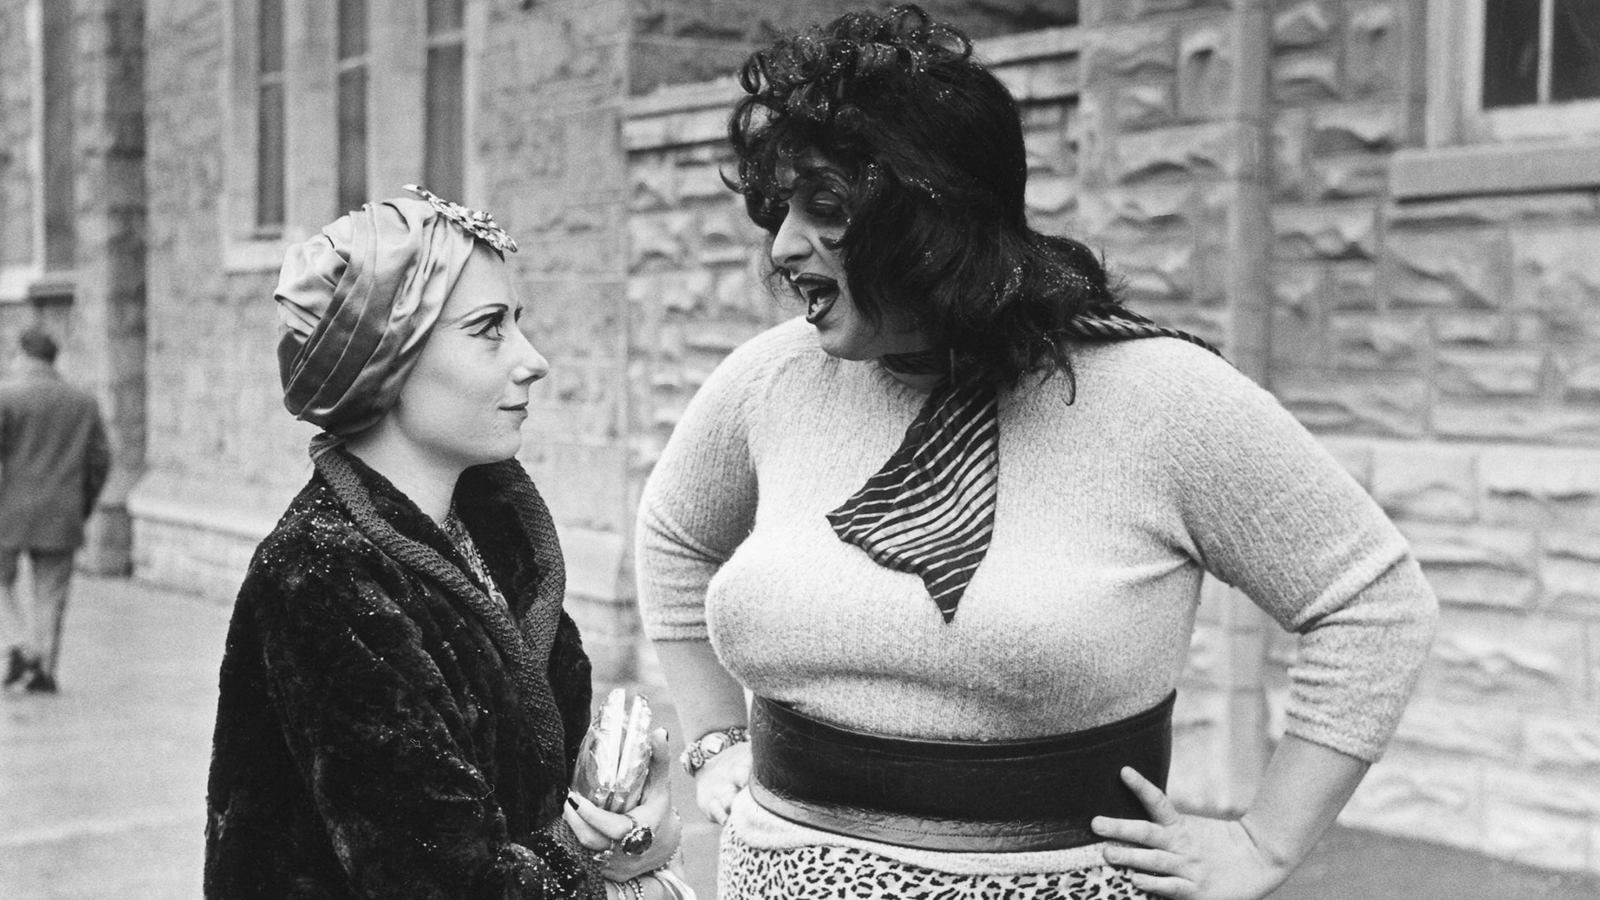 New Restoration of John Waters' MULTIPLE MANIACS coming to theaters!